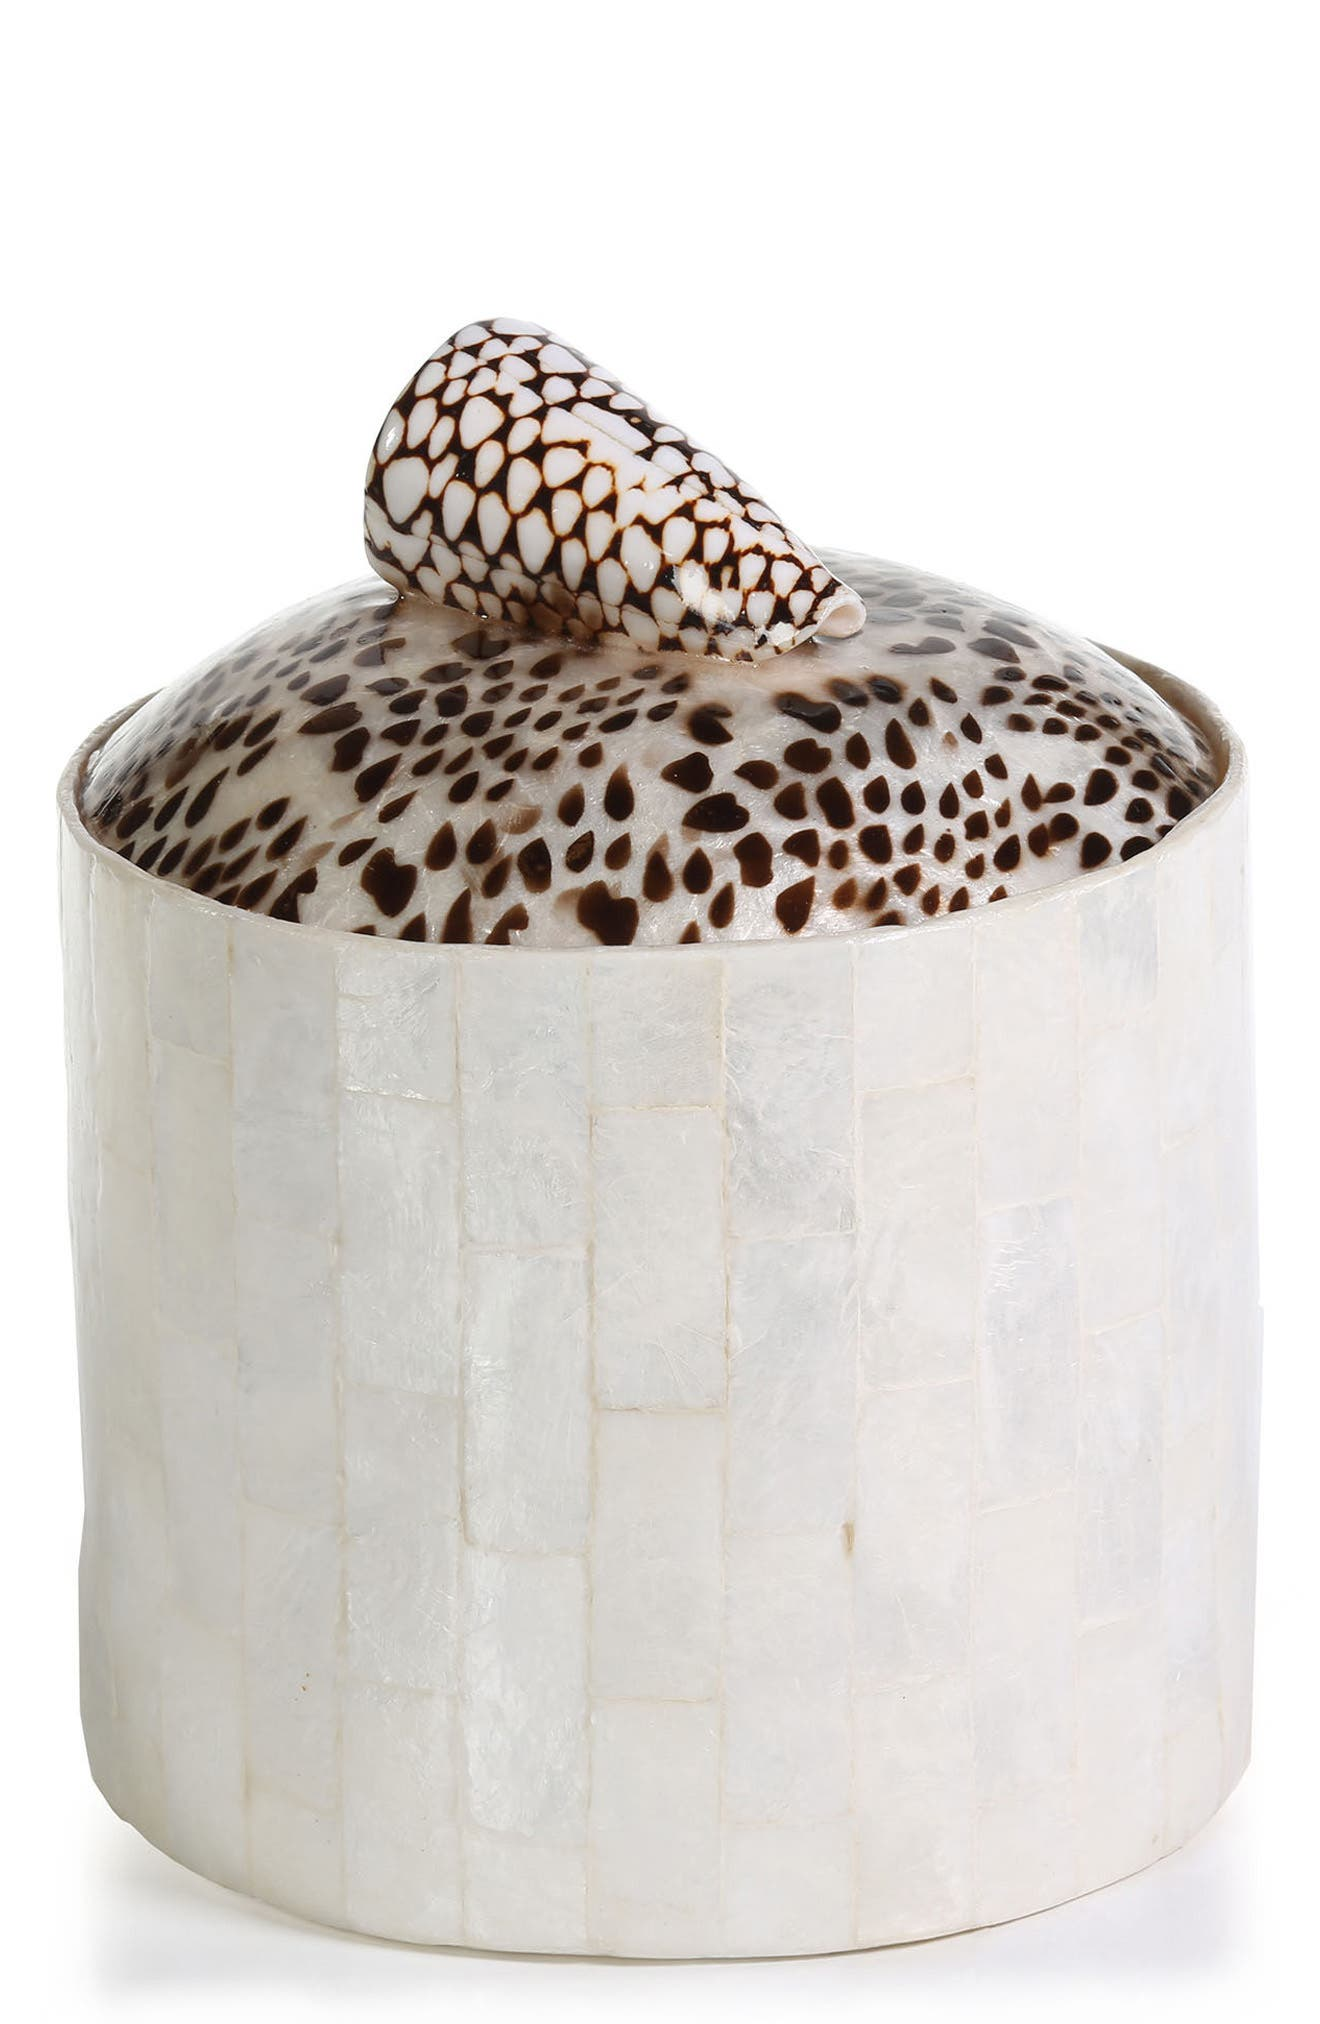 Capiz Shell Ice Bucket,                         Main,                         color, Off-White/ Brown